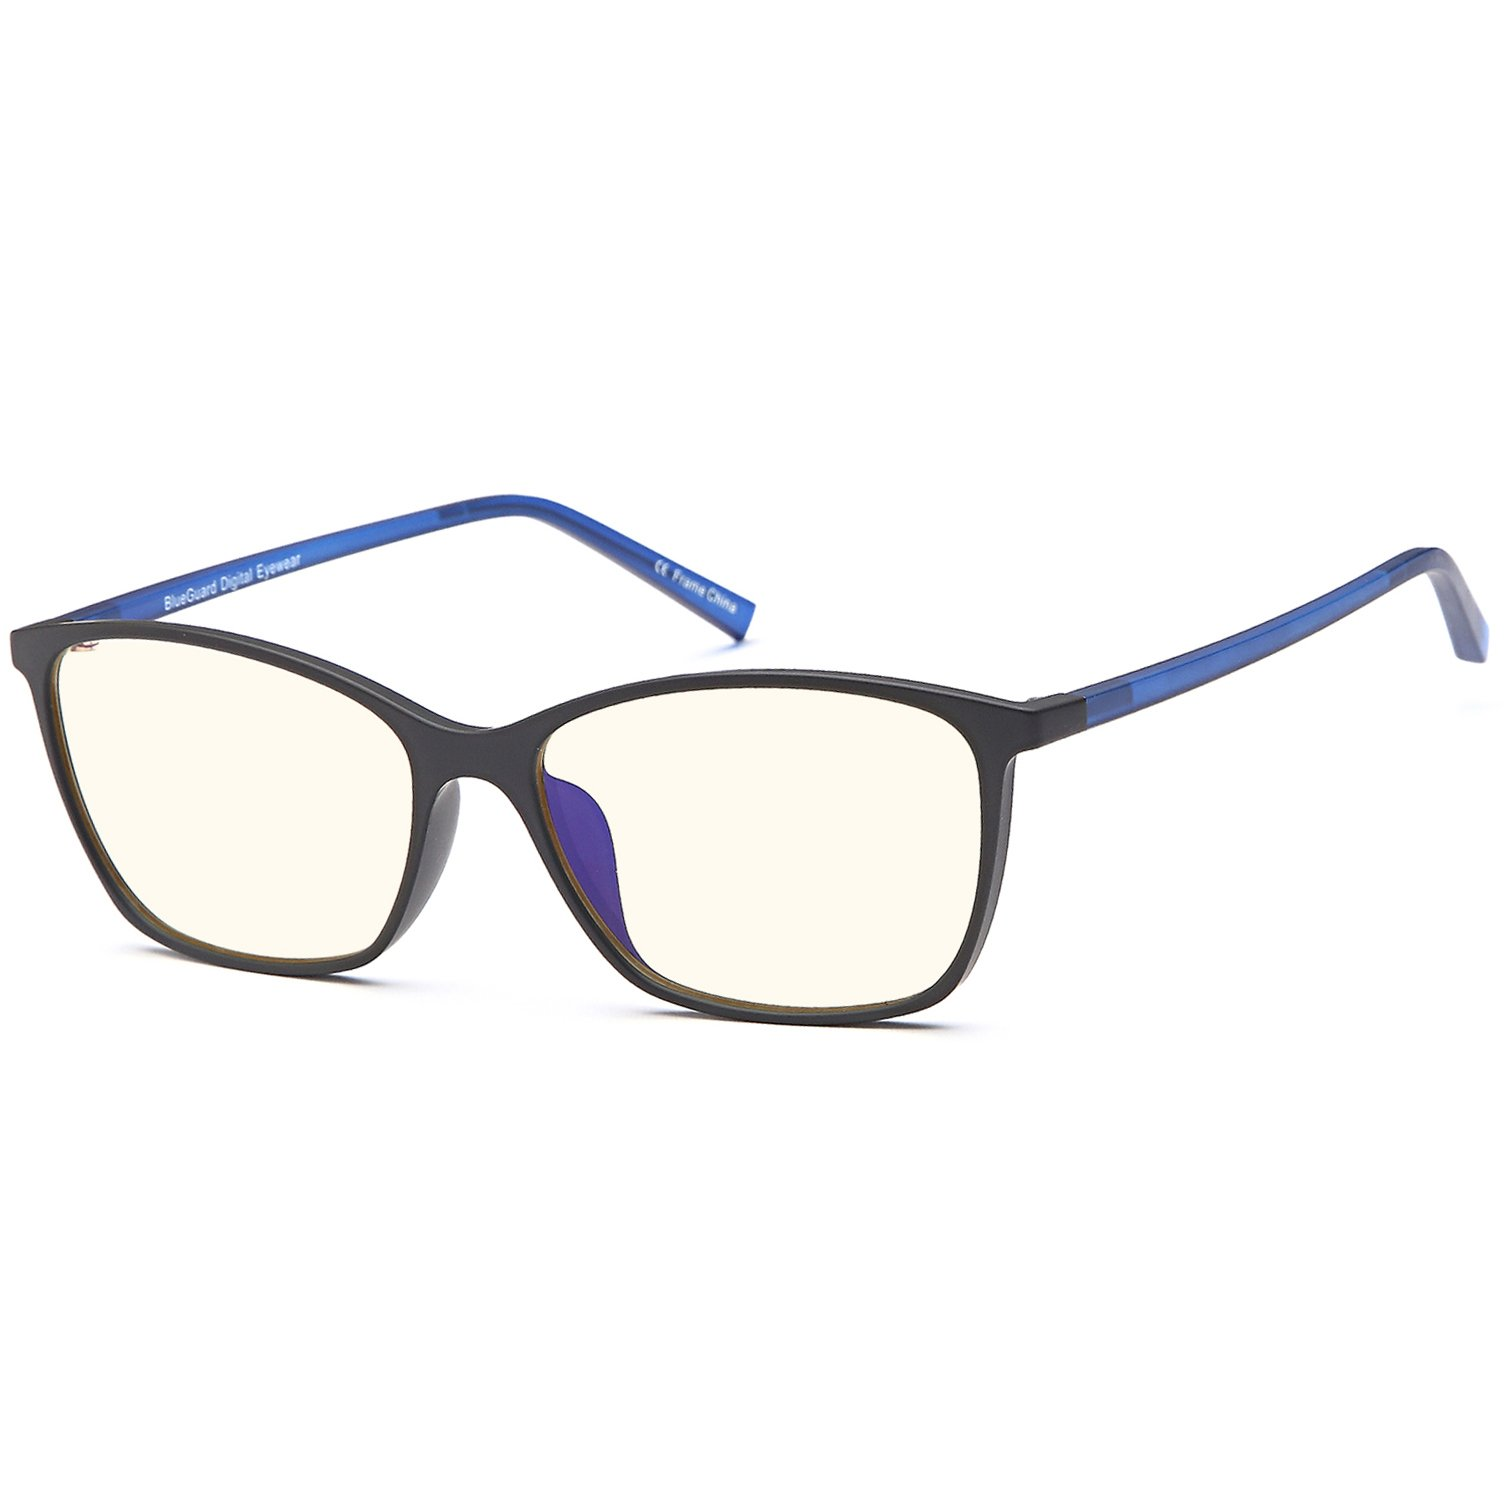 TRUST OPTICS Updated Anti Glare Blue Light Eyestrain Computer Glasses by TRUST OPTICS